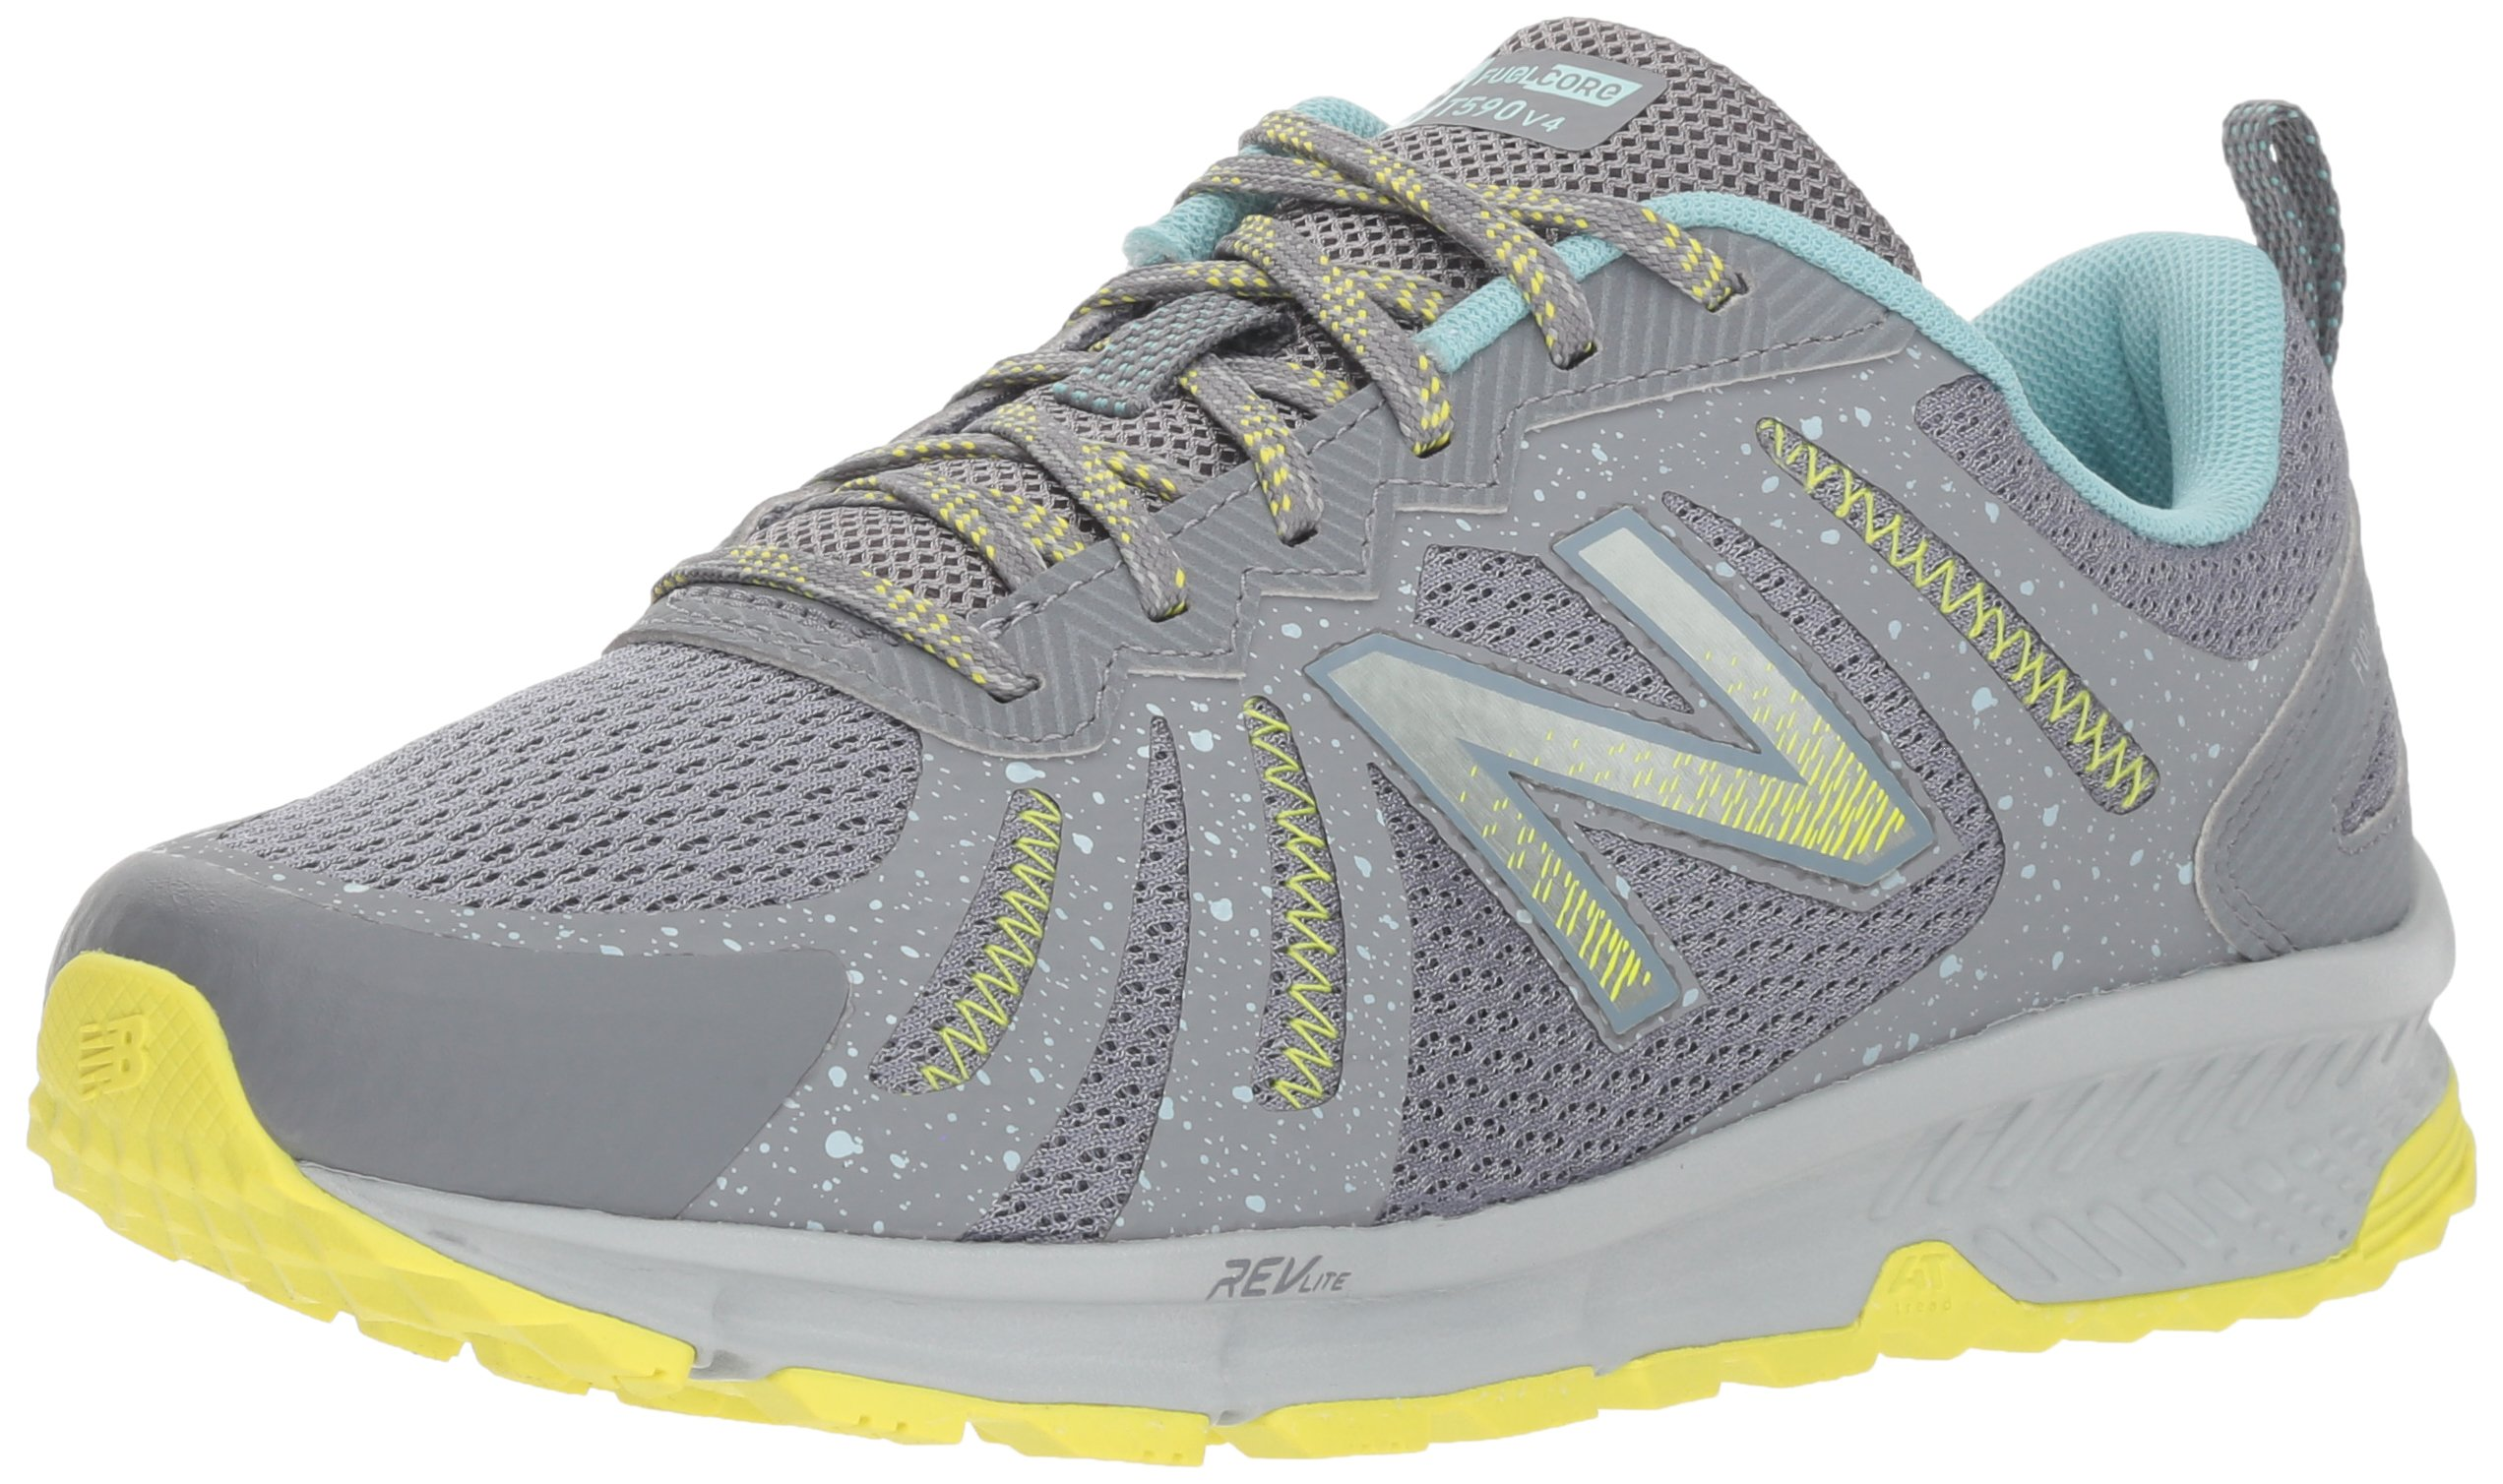 New Balance Women's 590v4 FuelCore Trail Running Shoe, Gunmetal, 5.5 D US by New Balance (Image #1)